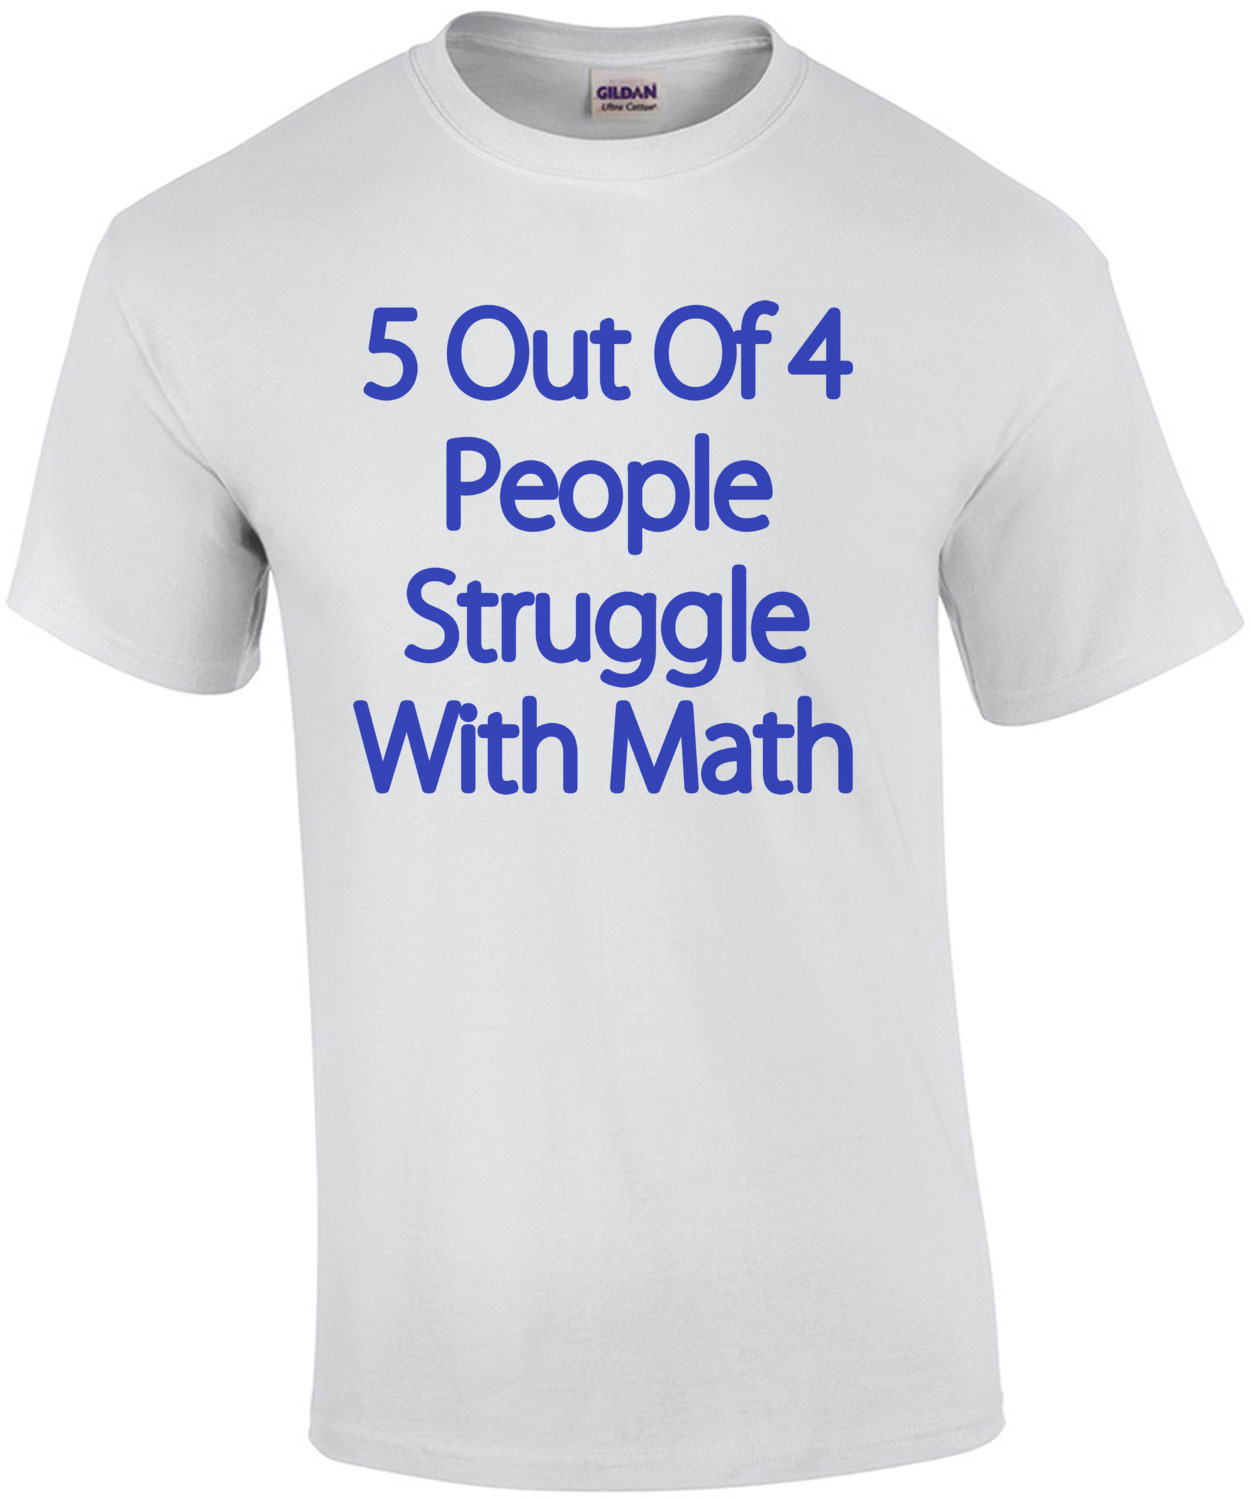 5 Out Of 4 People Struggle With Math Funny T-Shirt